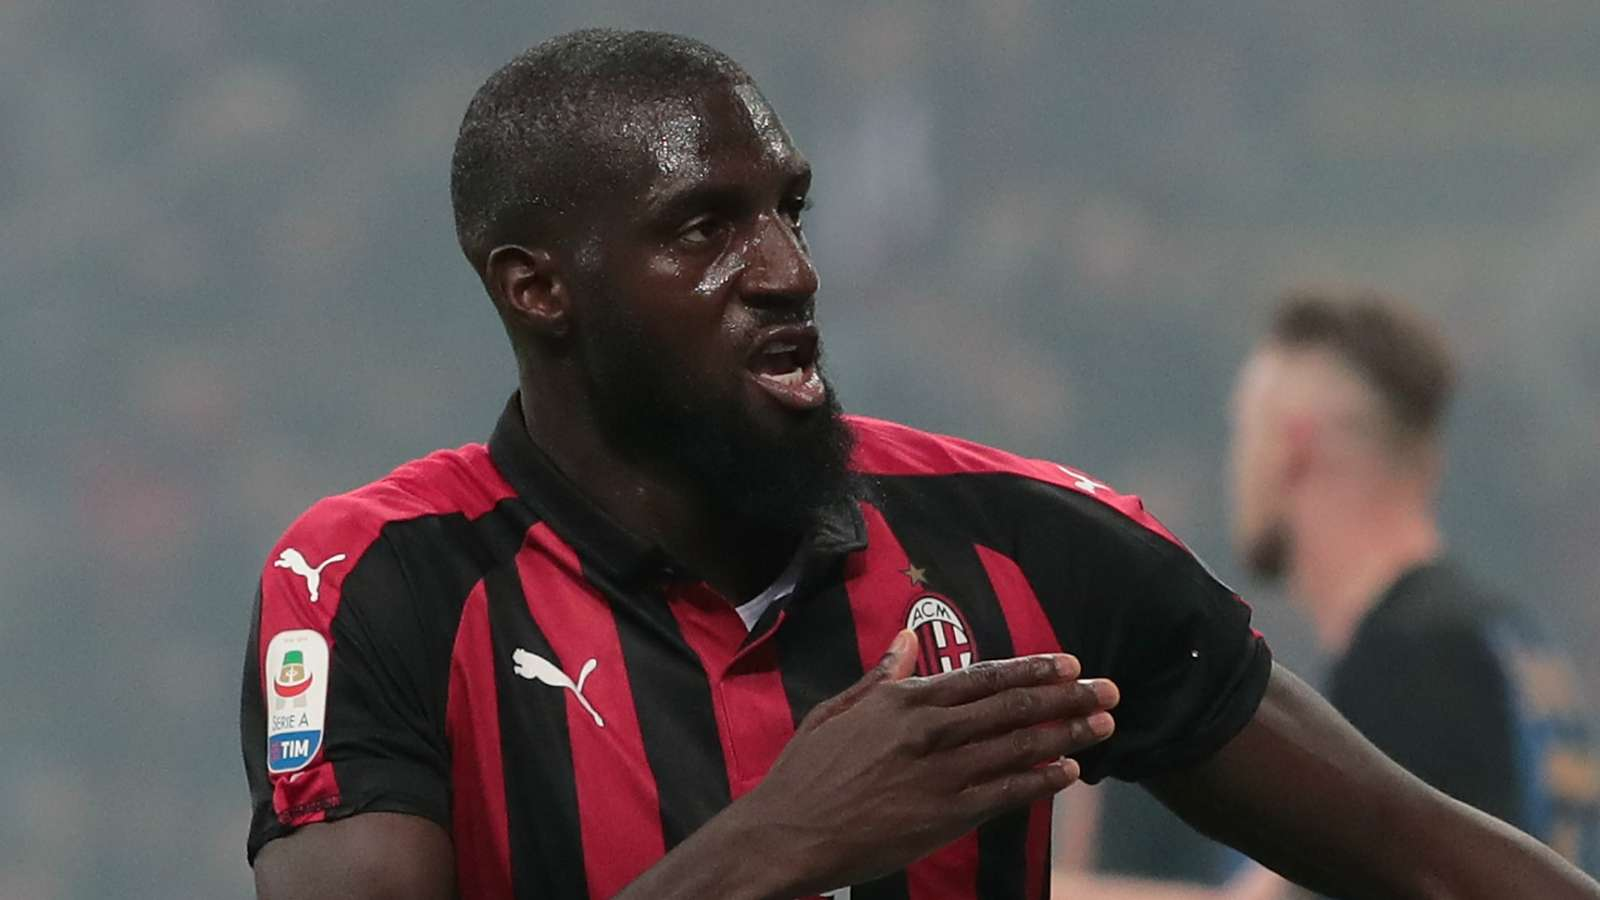 Bakayoko tells Gattuso to f*ck off after refusing to come off the bench